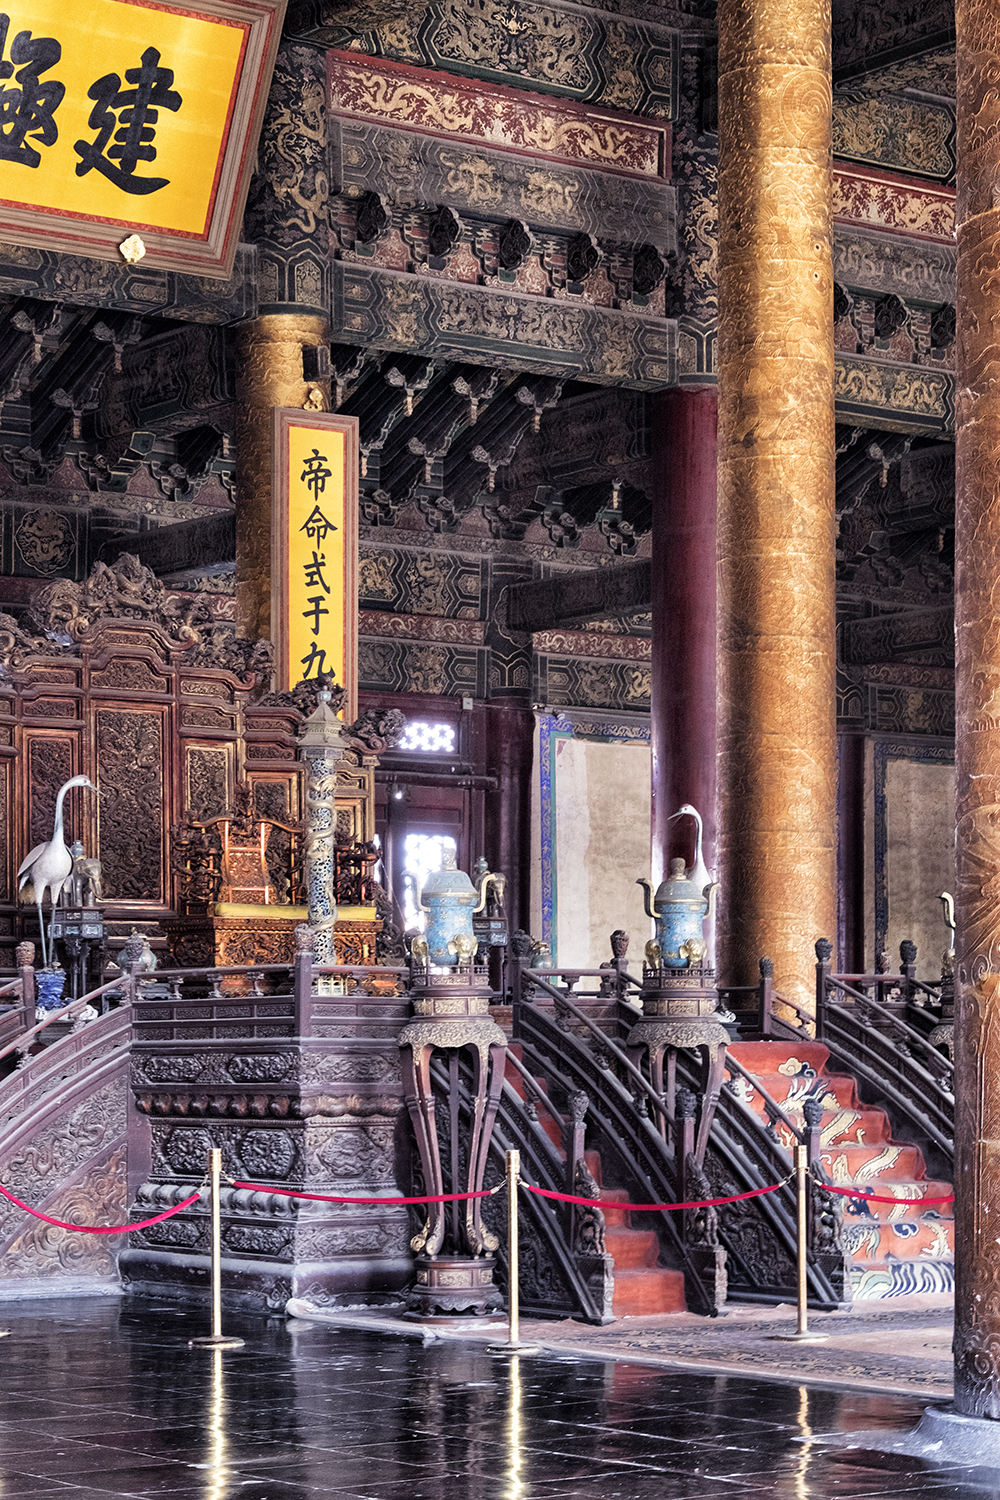 Throne Room in the Forbidden City